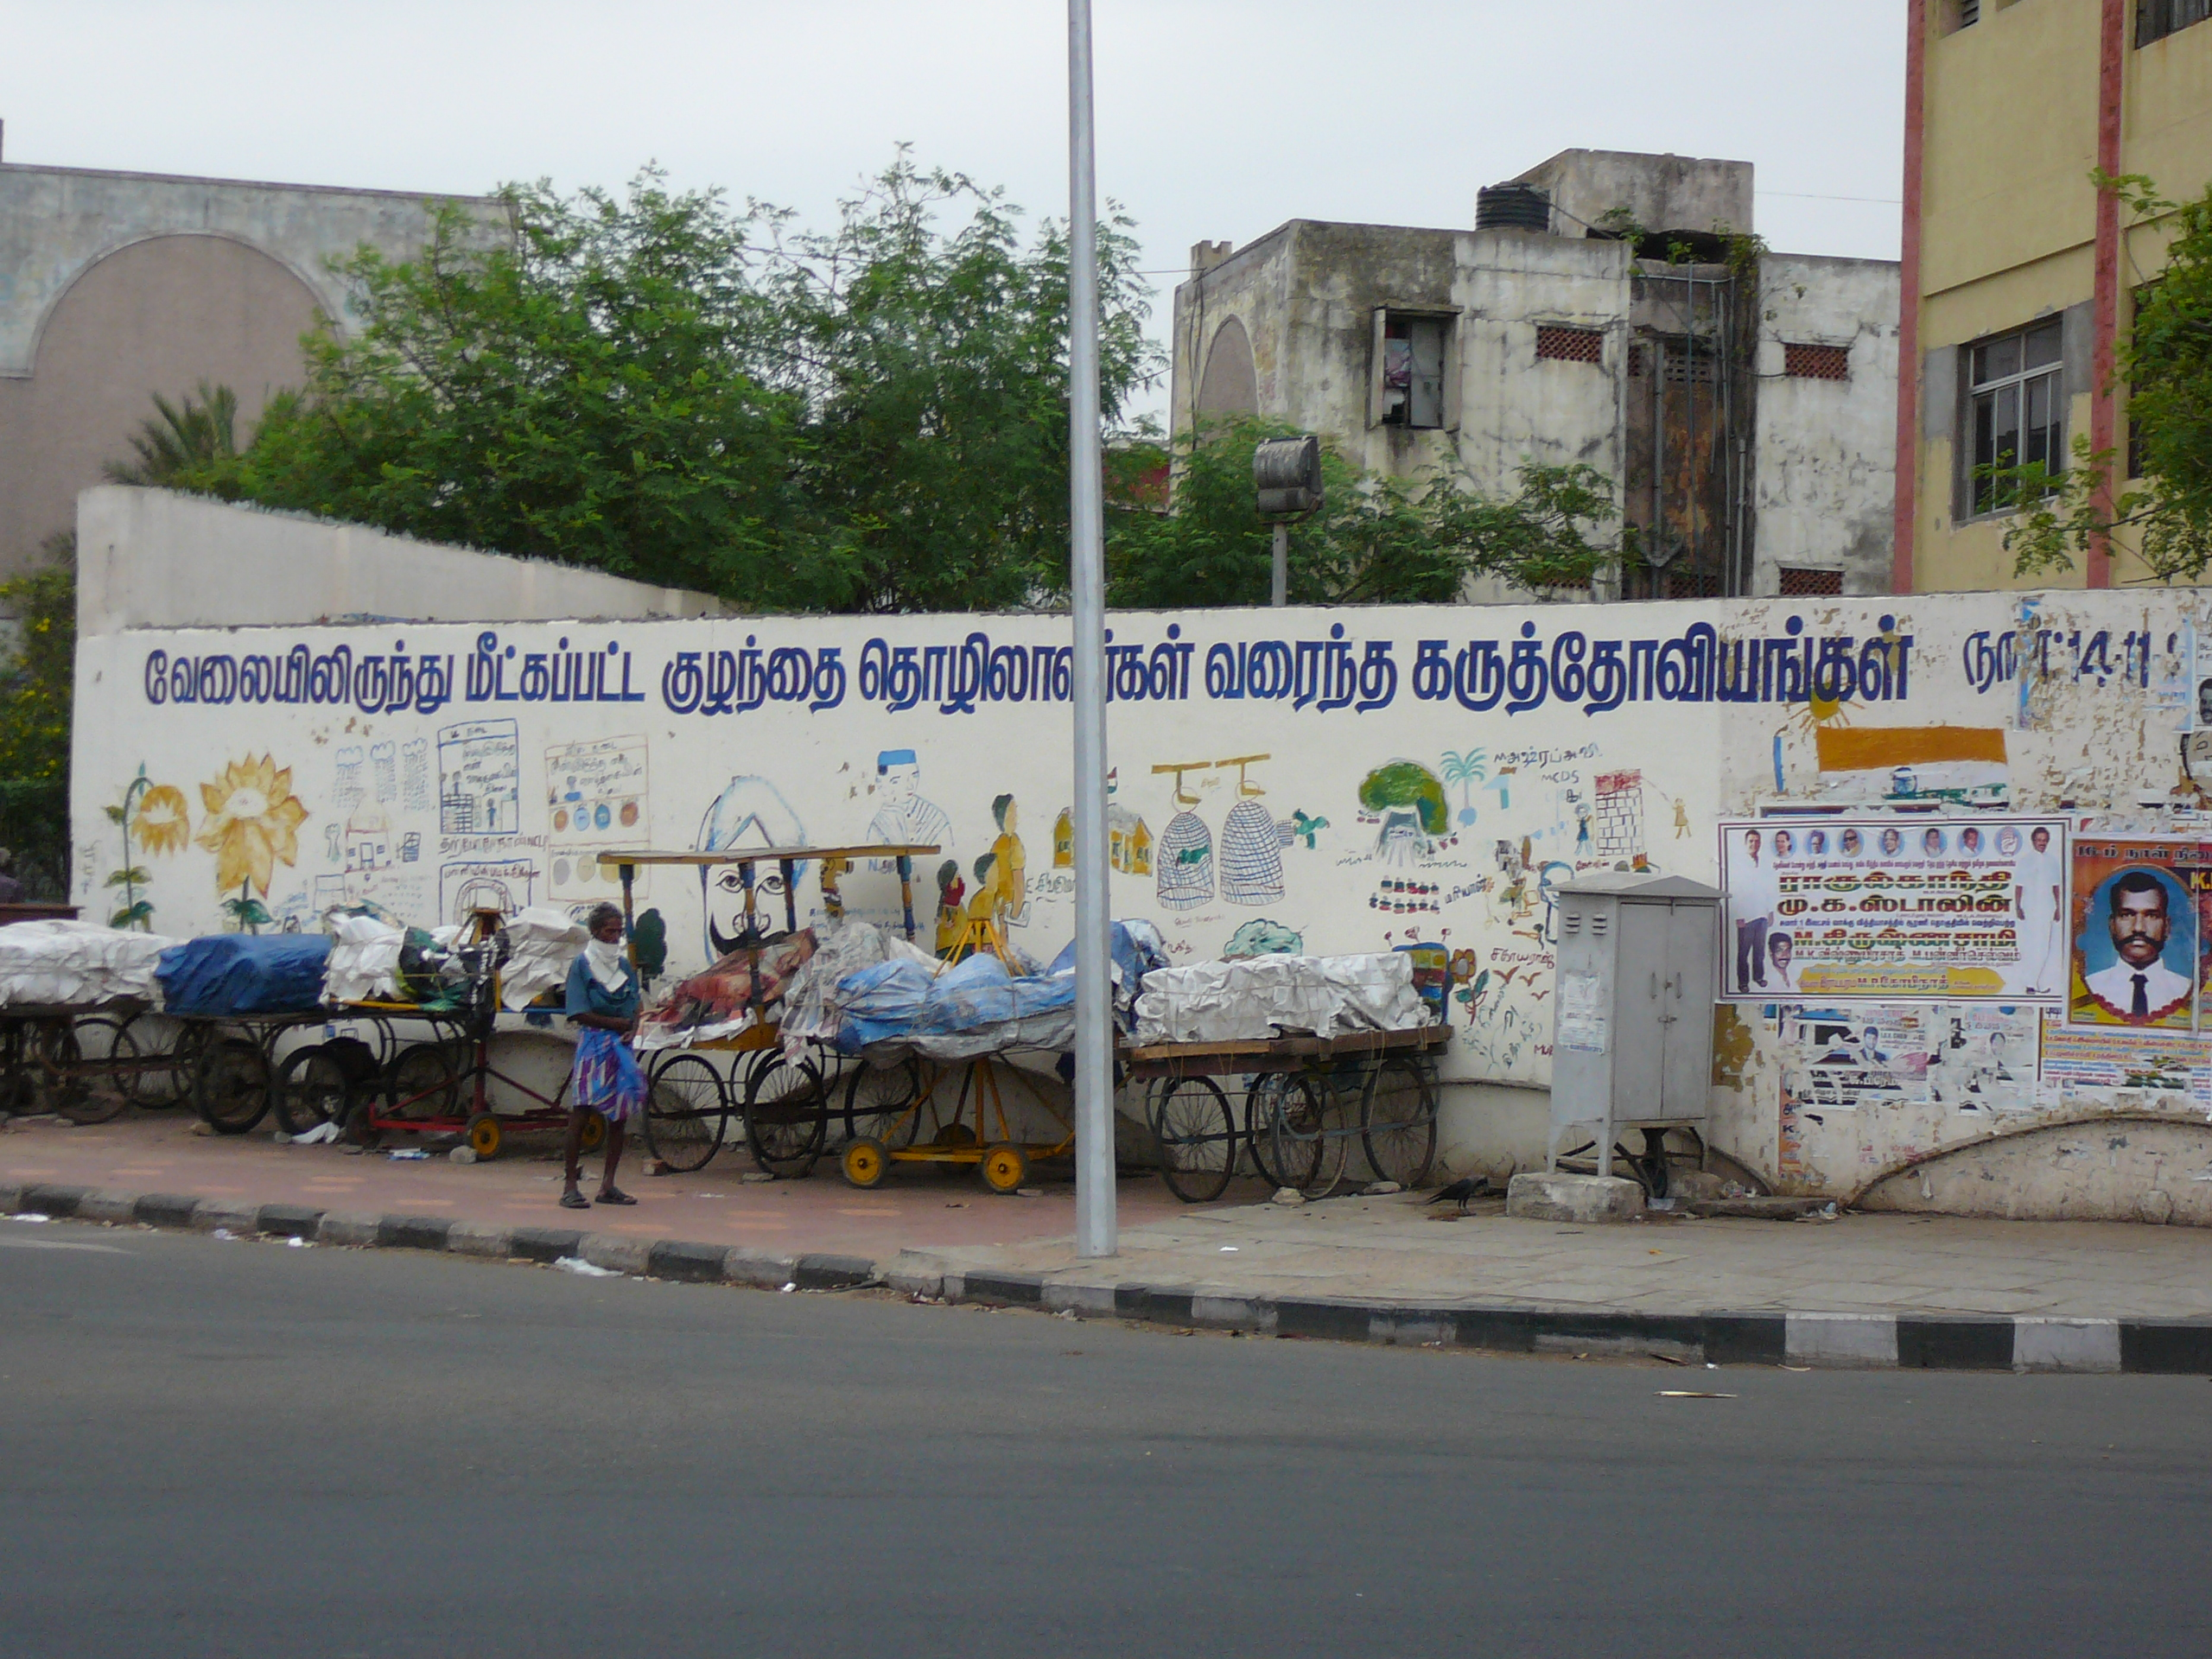 Posters-Marina-Beach-Chennai-Madras-Sightseeing-Child-Labor